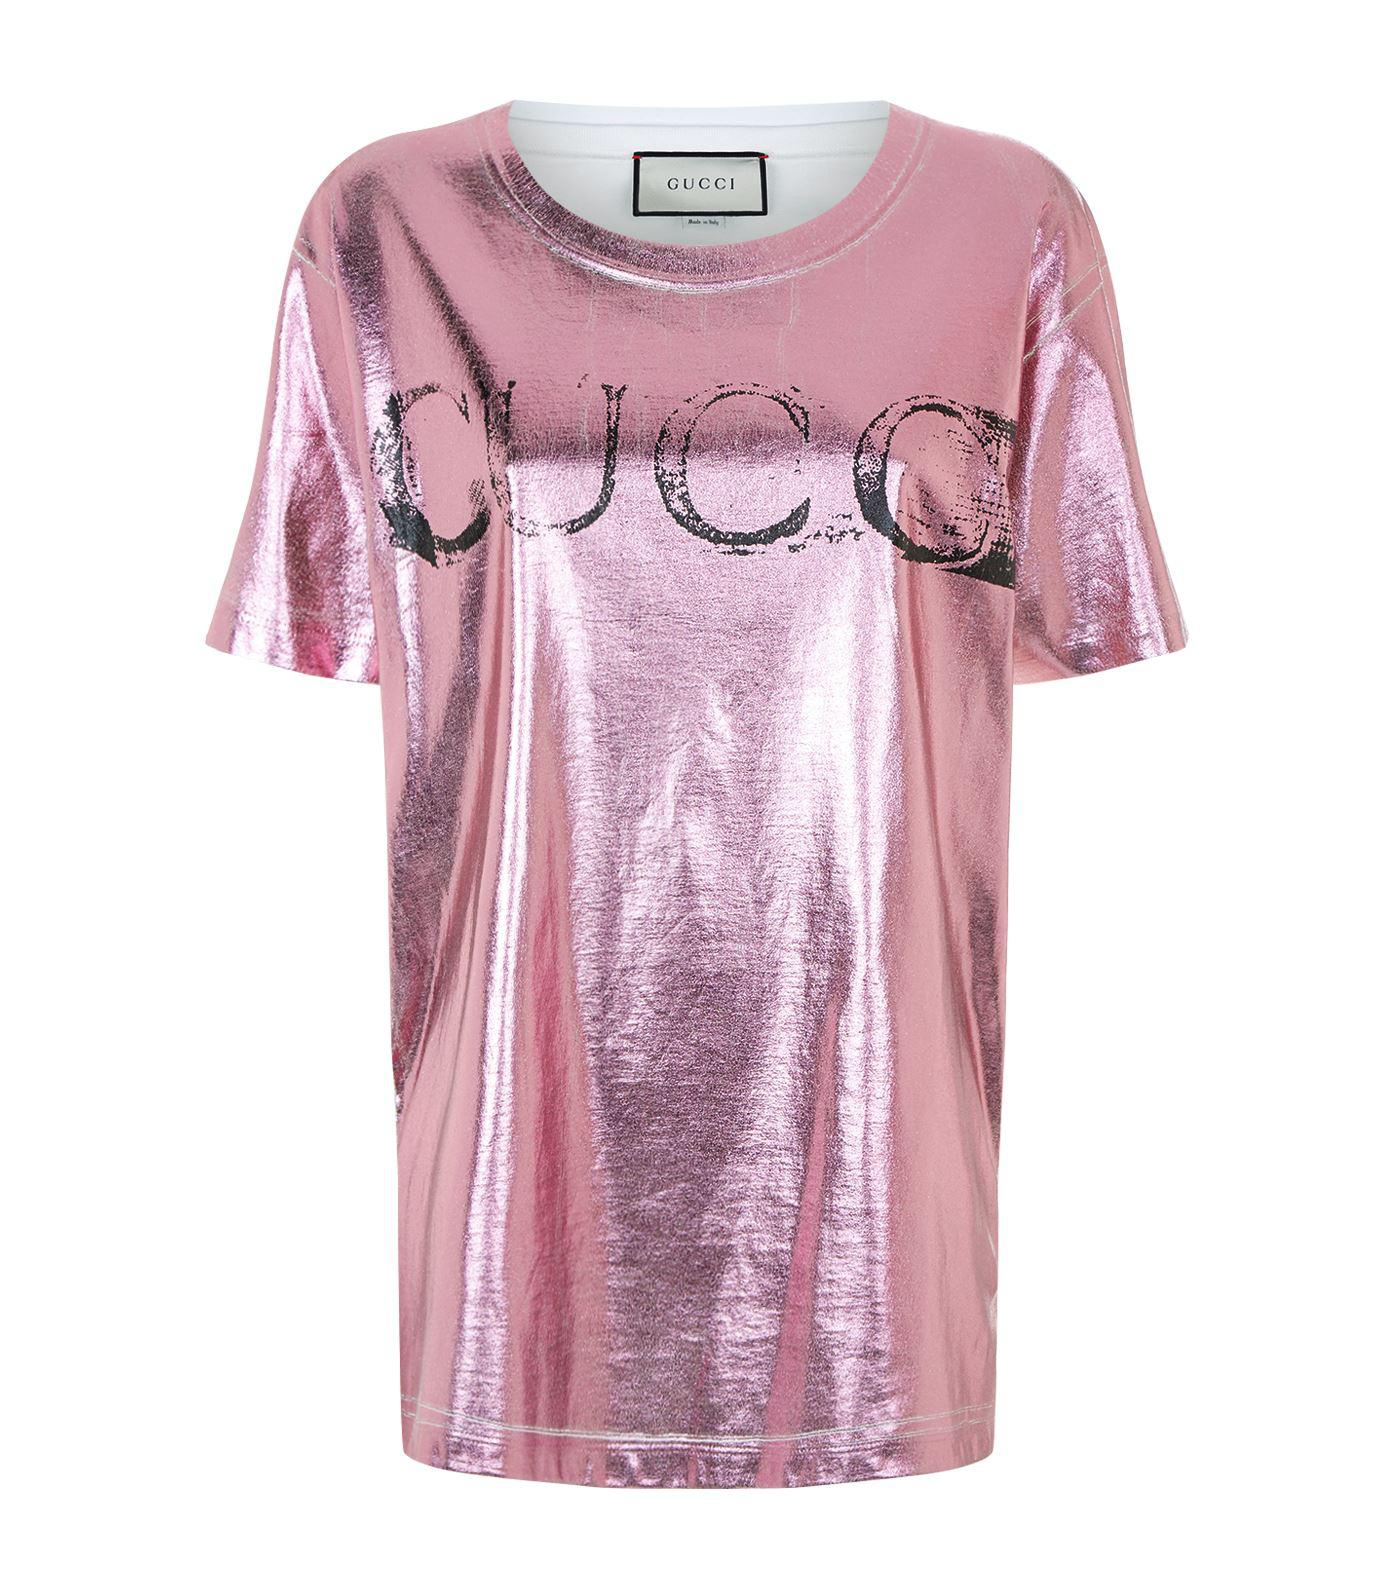 10d2d290b Gucci Blind For Love T-shirt, Cream, M in Pink - Lyst